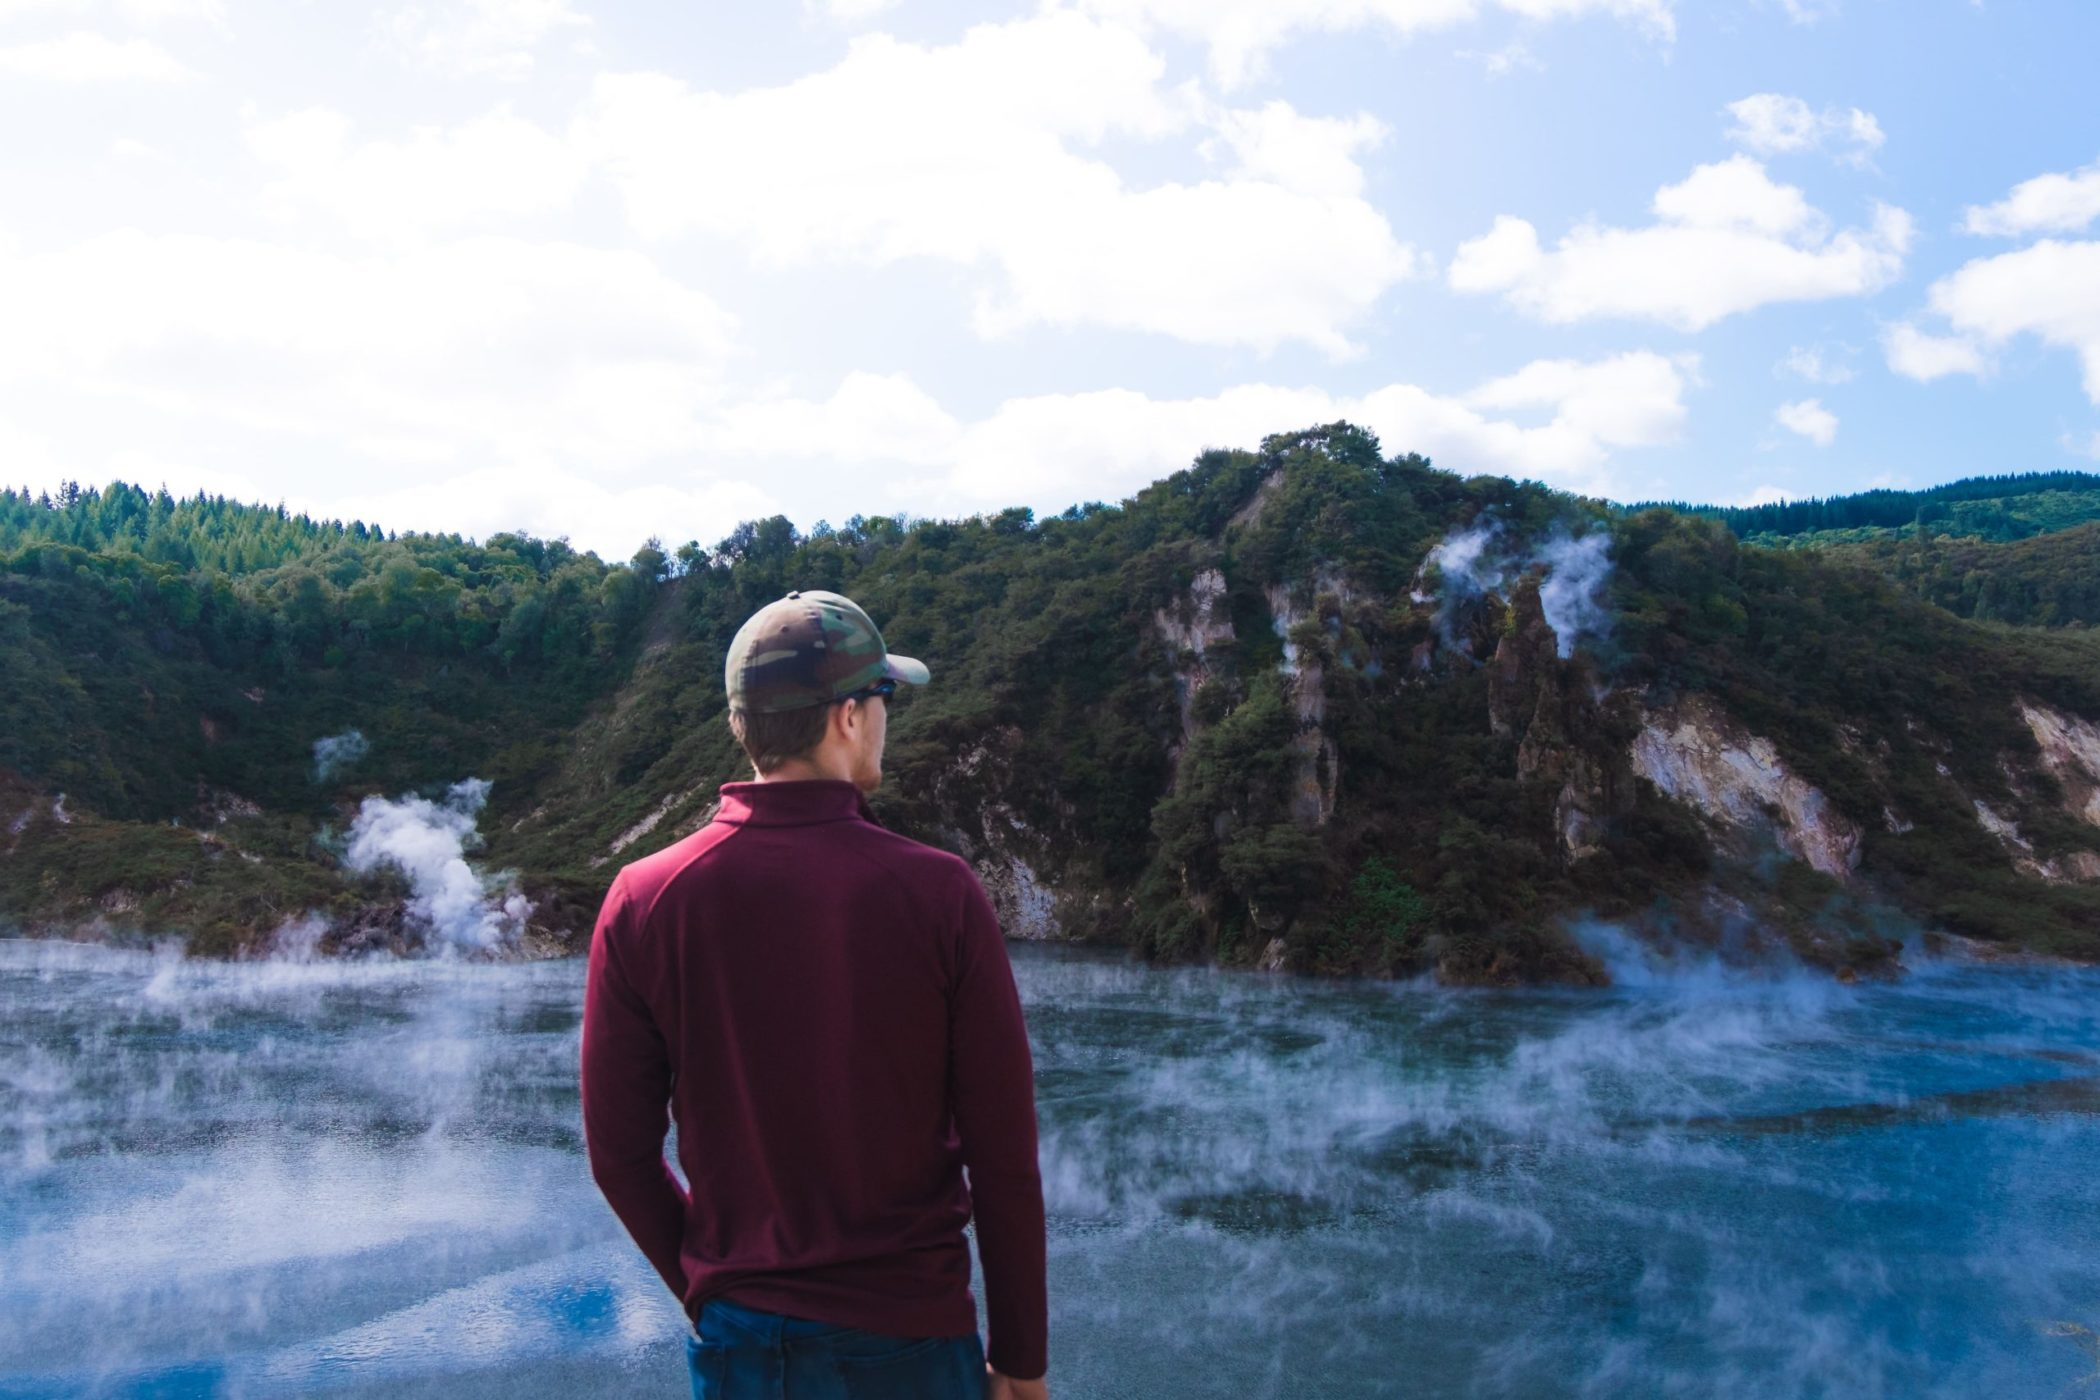 Taking a hike through Waimangu Volcanic Valley is one of the best things to do in Rotorua